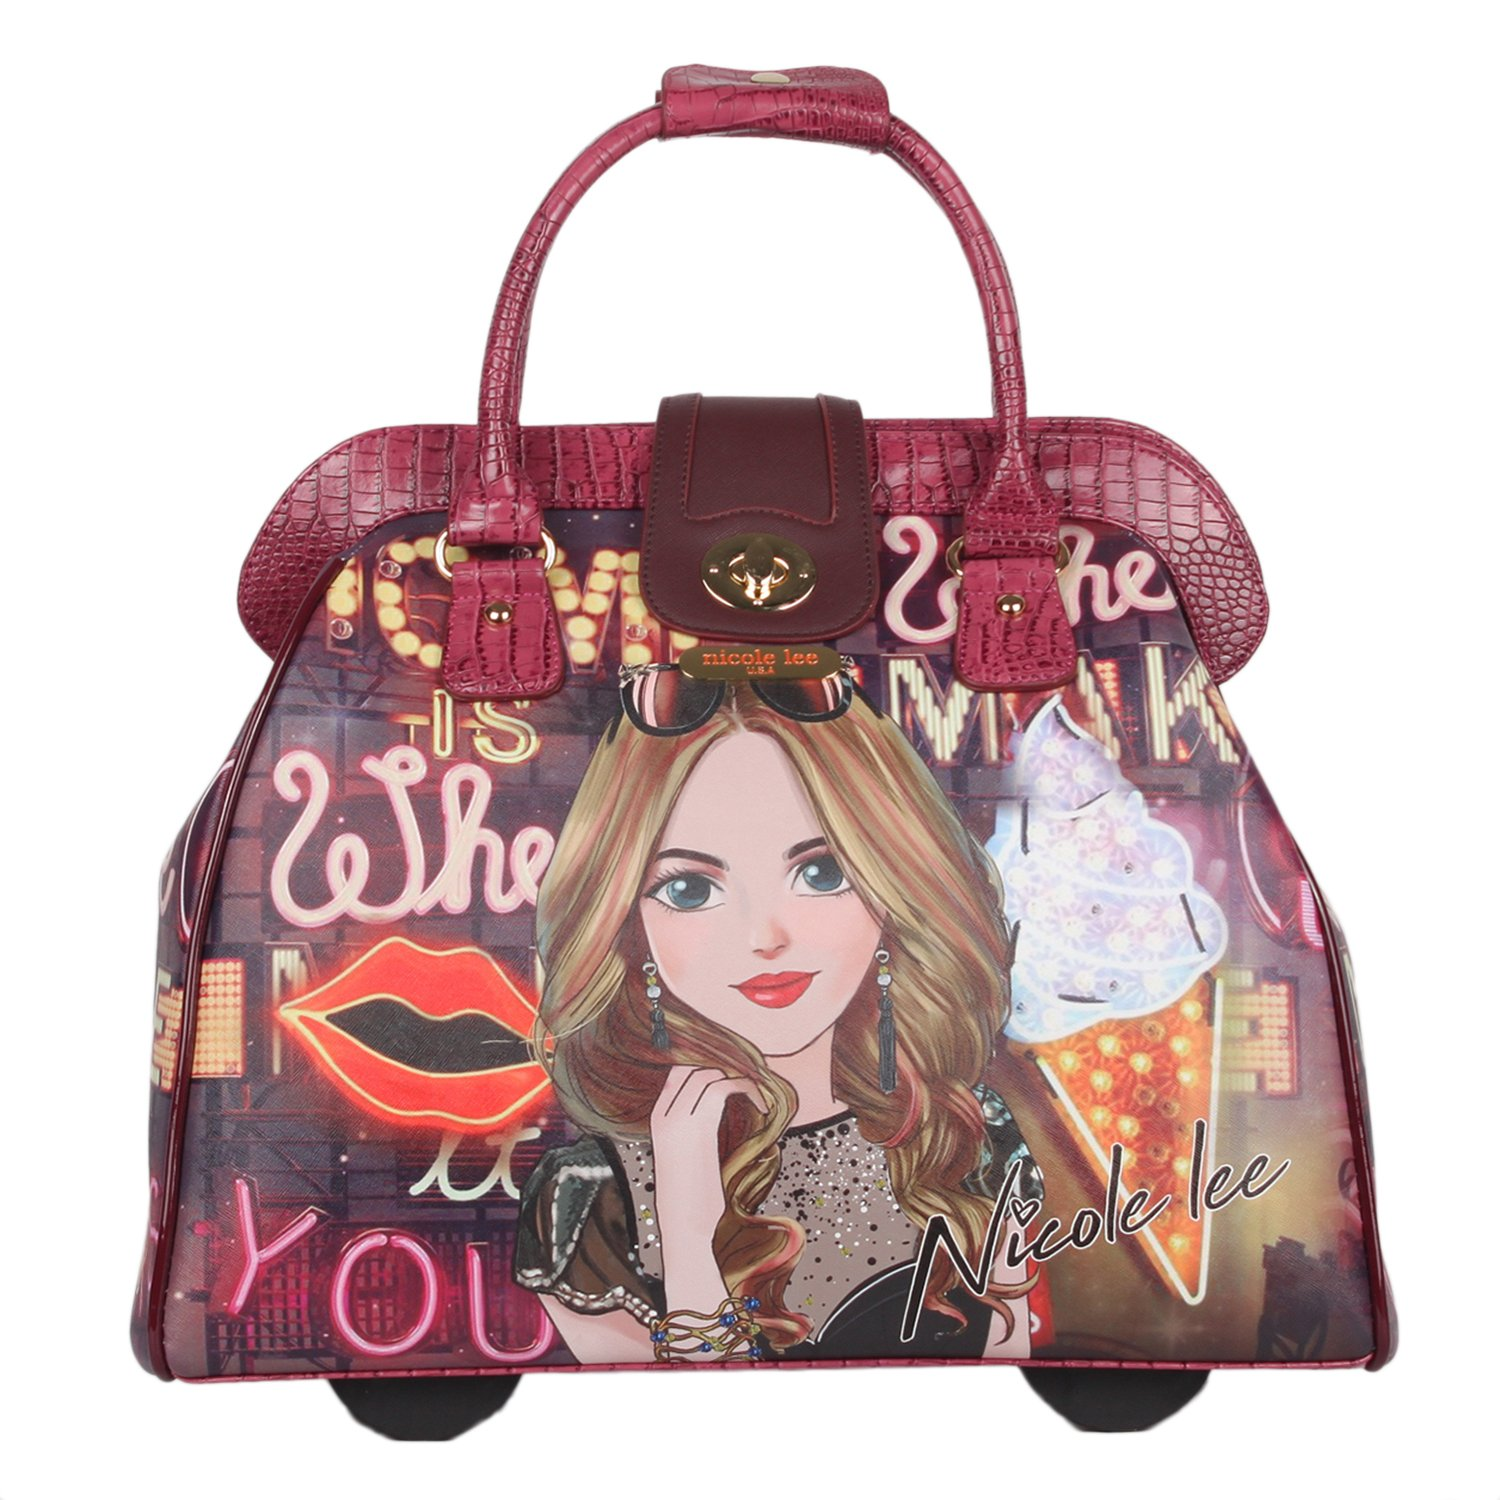 Nicole Lee Women's Fashion Print Rolling Business Laptop Compartment Travel Tote, Girl's Night Out, One Size